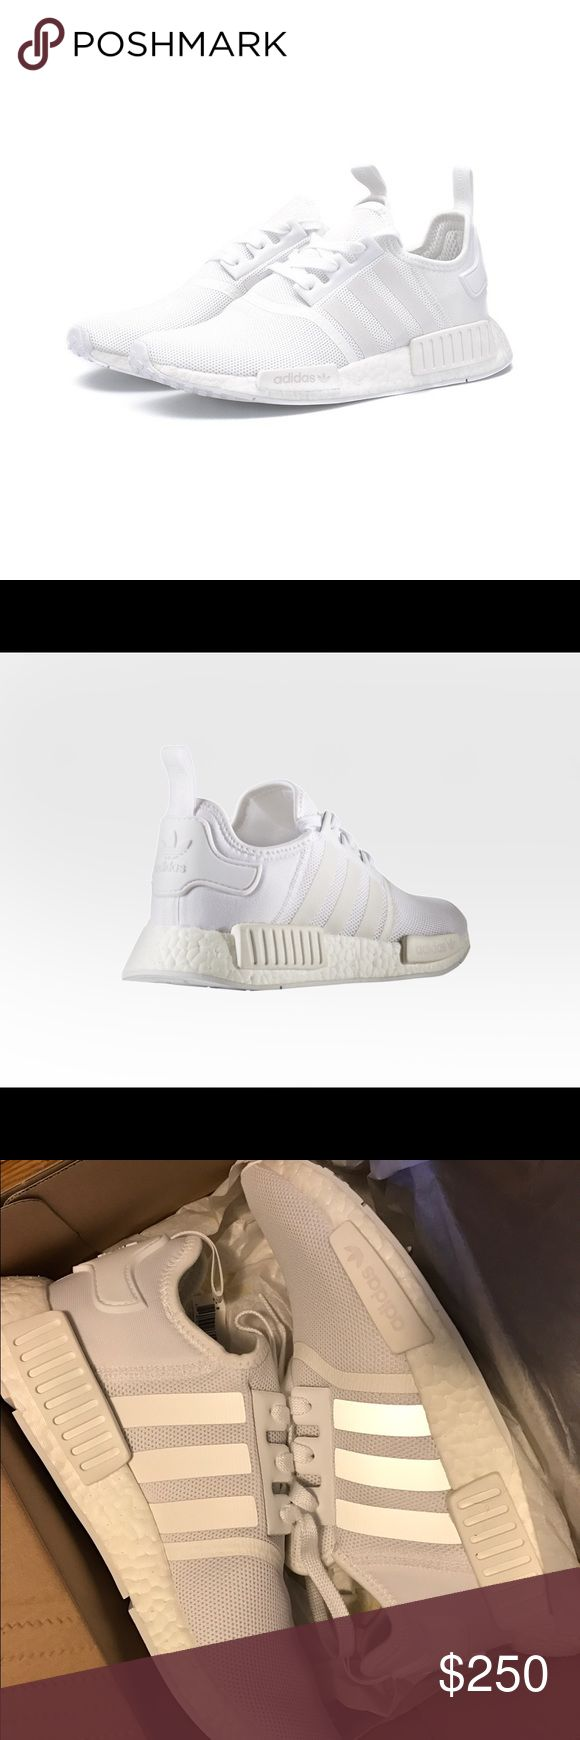 Adidas Originals NMD R1 Women Sz 8.5 White BA7245 Up for sale is a brand new, in box, pair of   Adidas Originals NMD R1   Triple White (BA7245)   US Men Size 7 / Women Size 8.5   100% Authentic and Never Worn Adidas Shoes Athletic Shoes